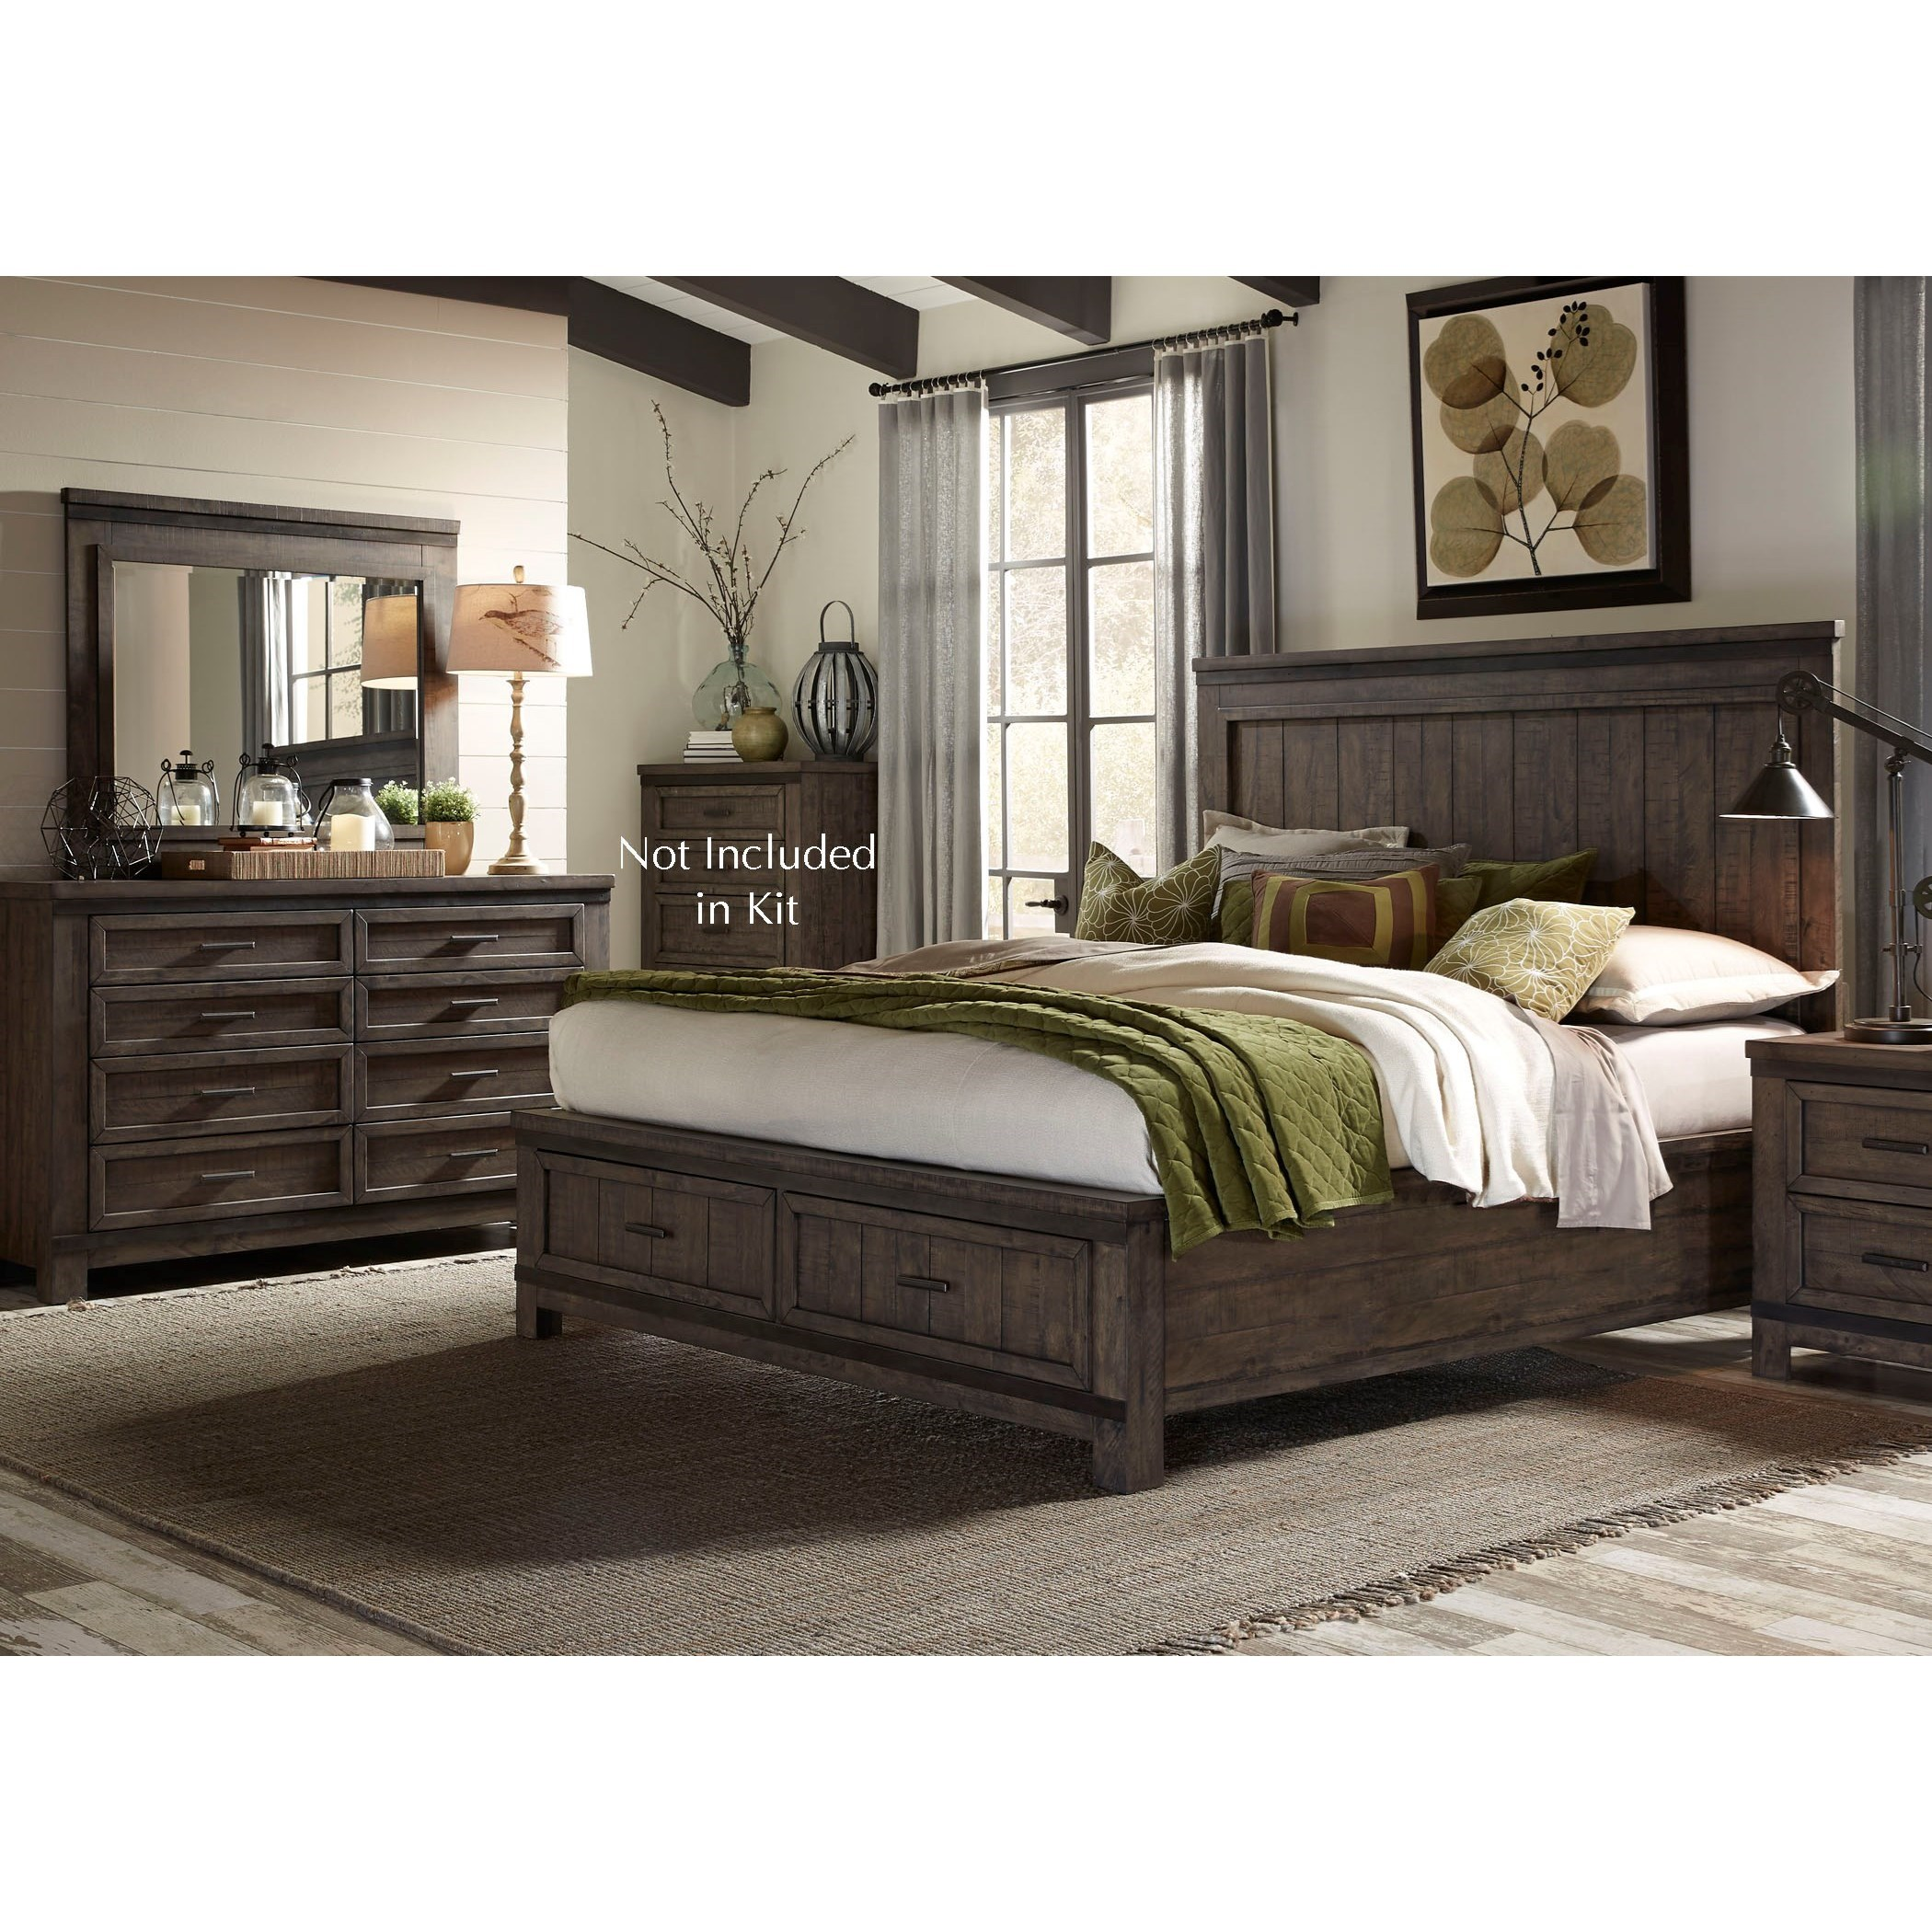 Thornwood Hills Queen Bedroom Group by Liberty Furniture at Northeast Factory Direct